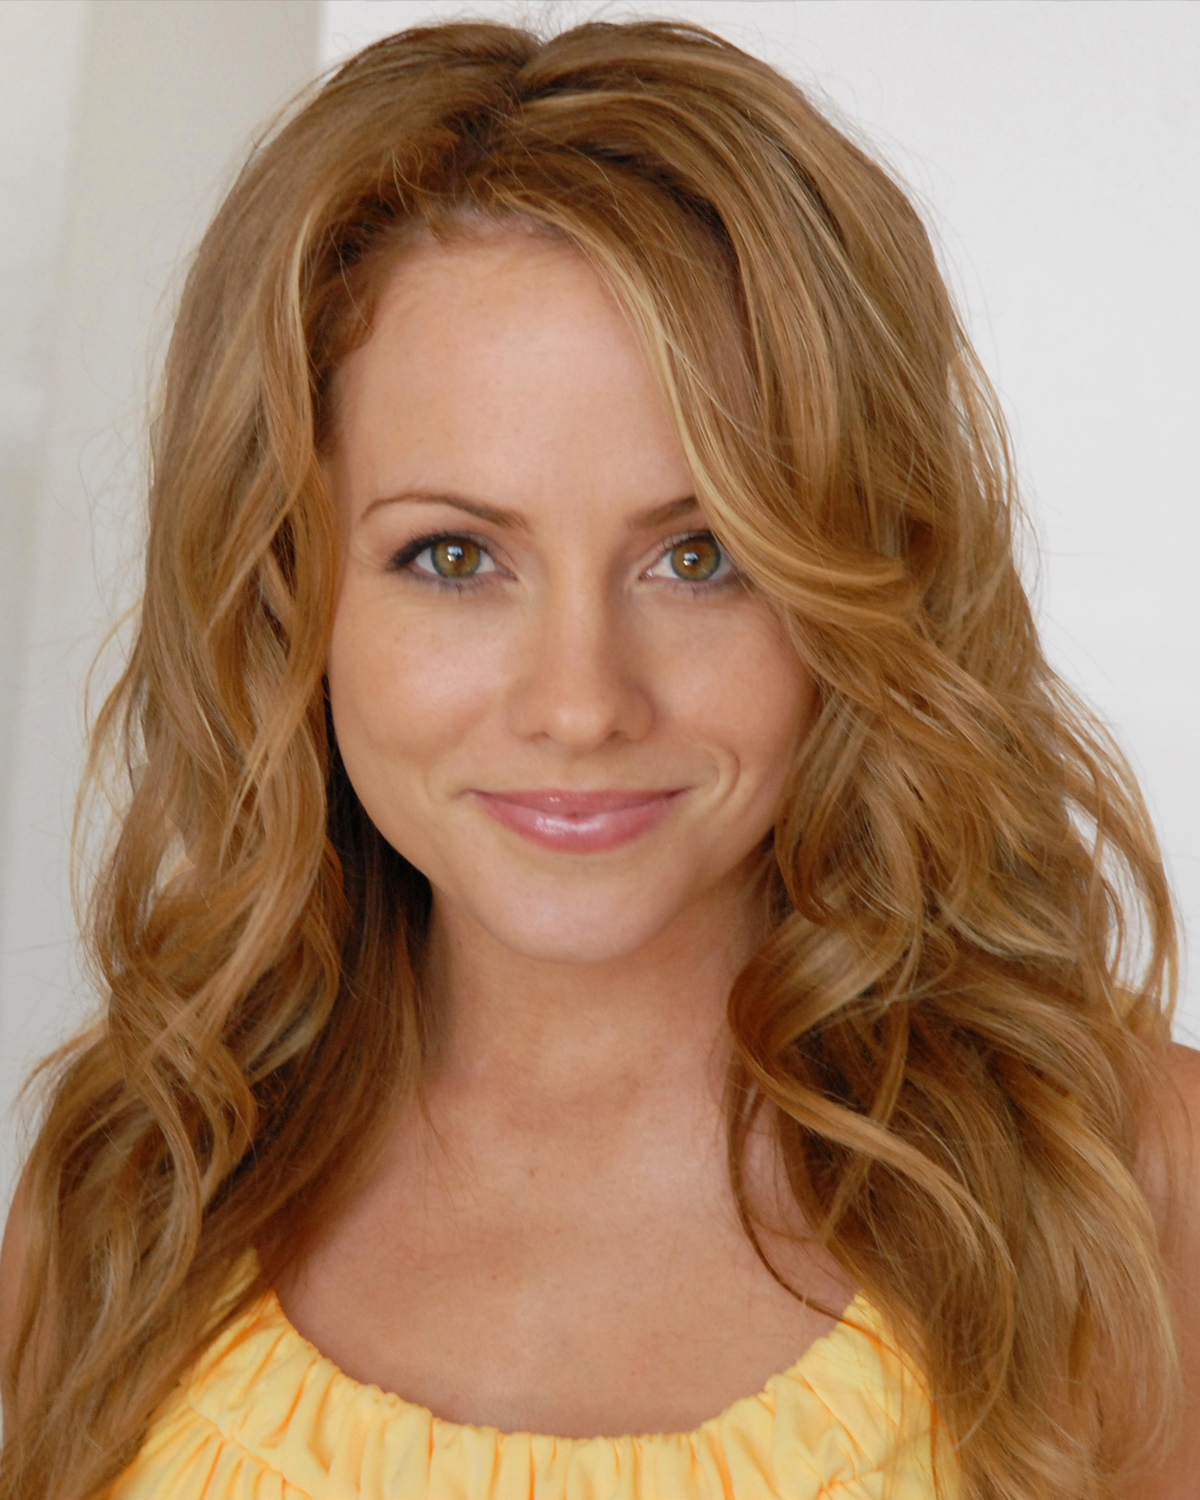 kelly stables cindy brady assistant choreographer kelly is ex th ited